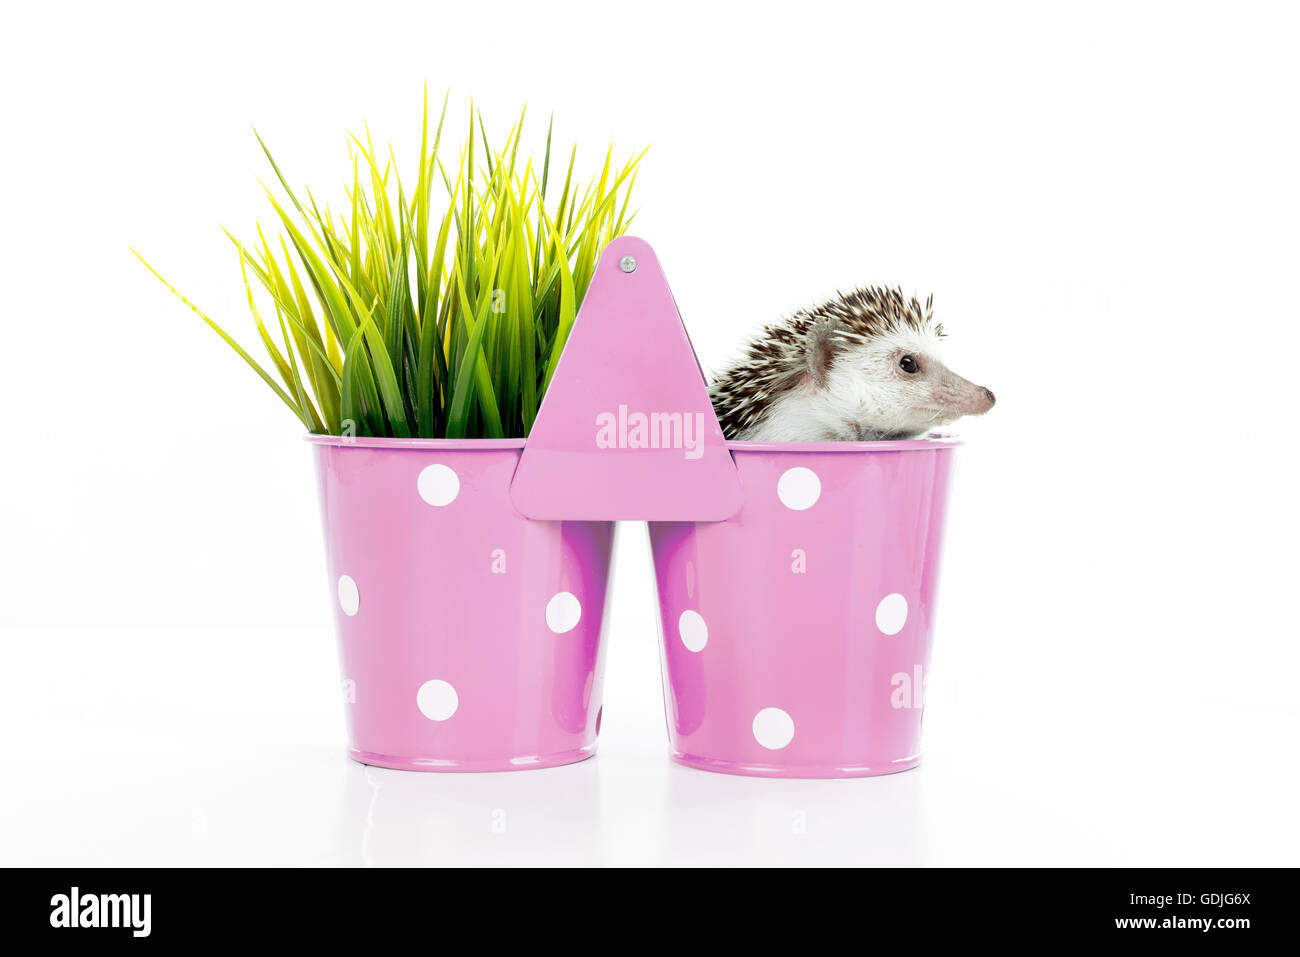 Cute hedgehog inside a vase isolated in white - Stock Image